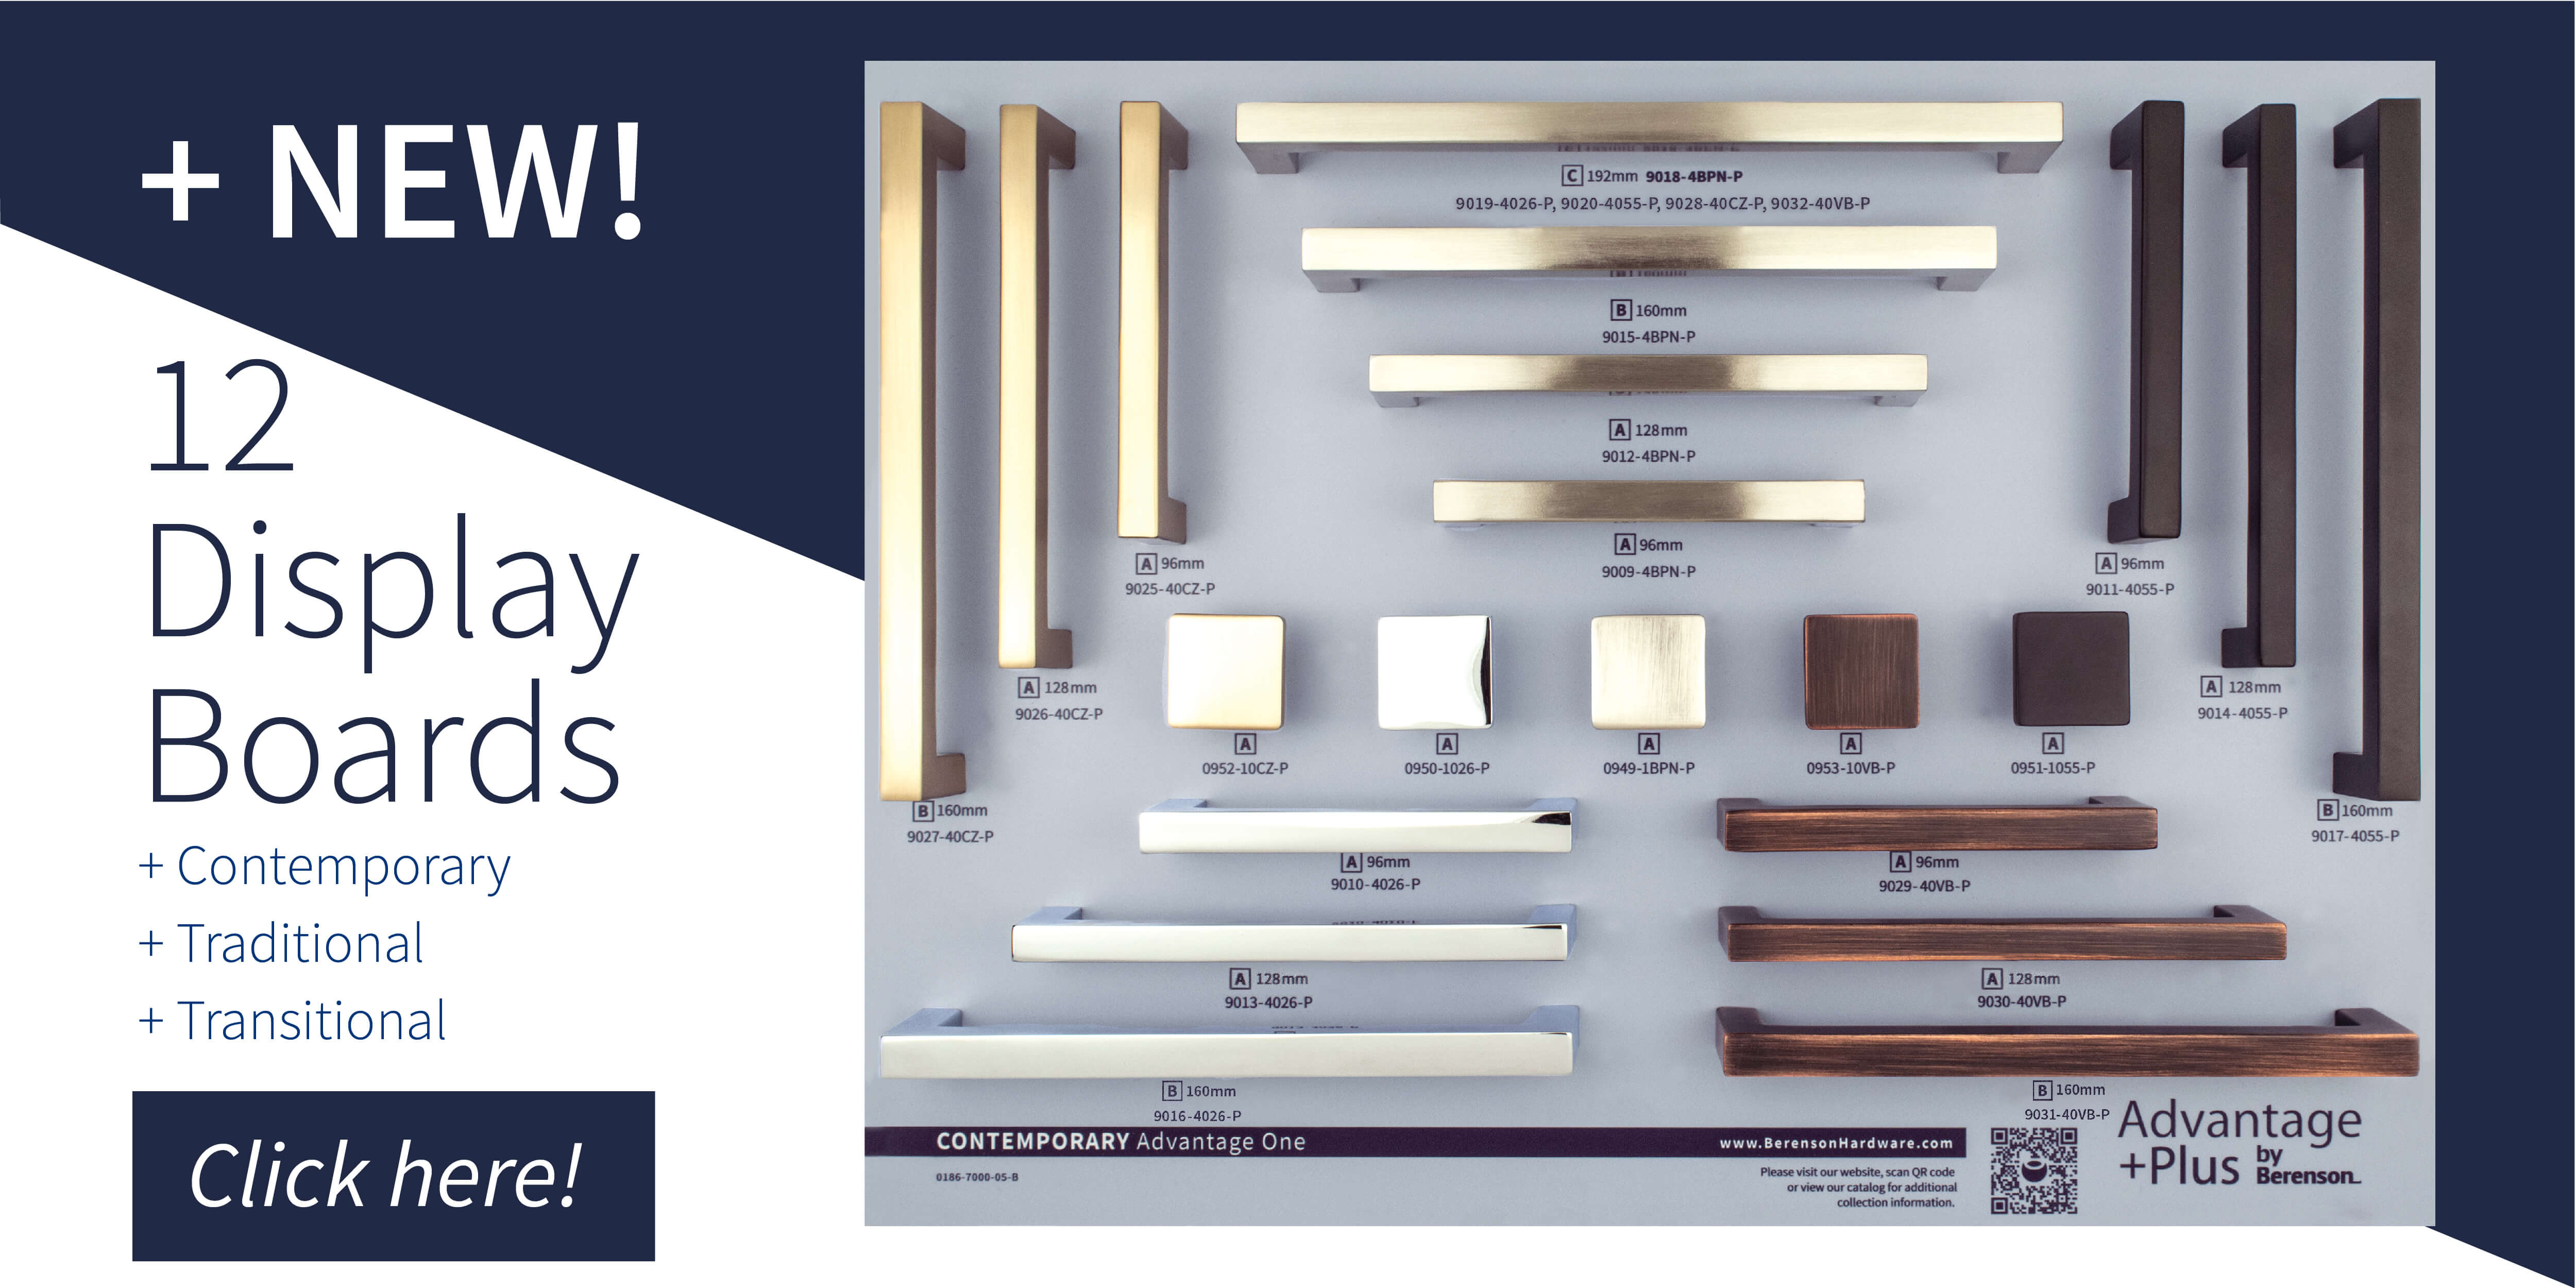 Advantage Plus by Berenson Display Boards